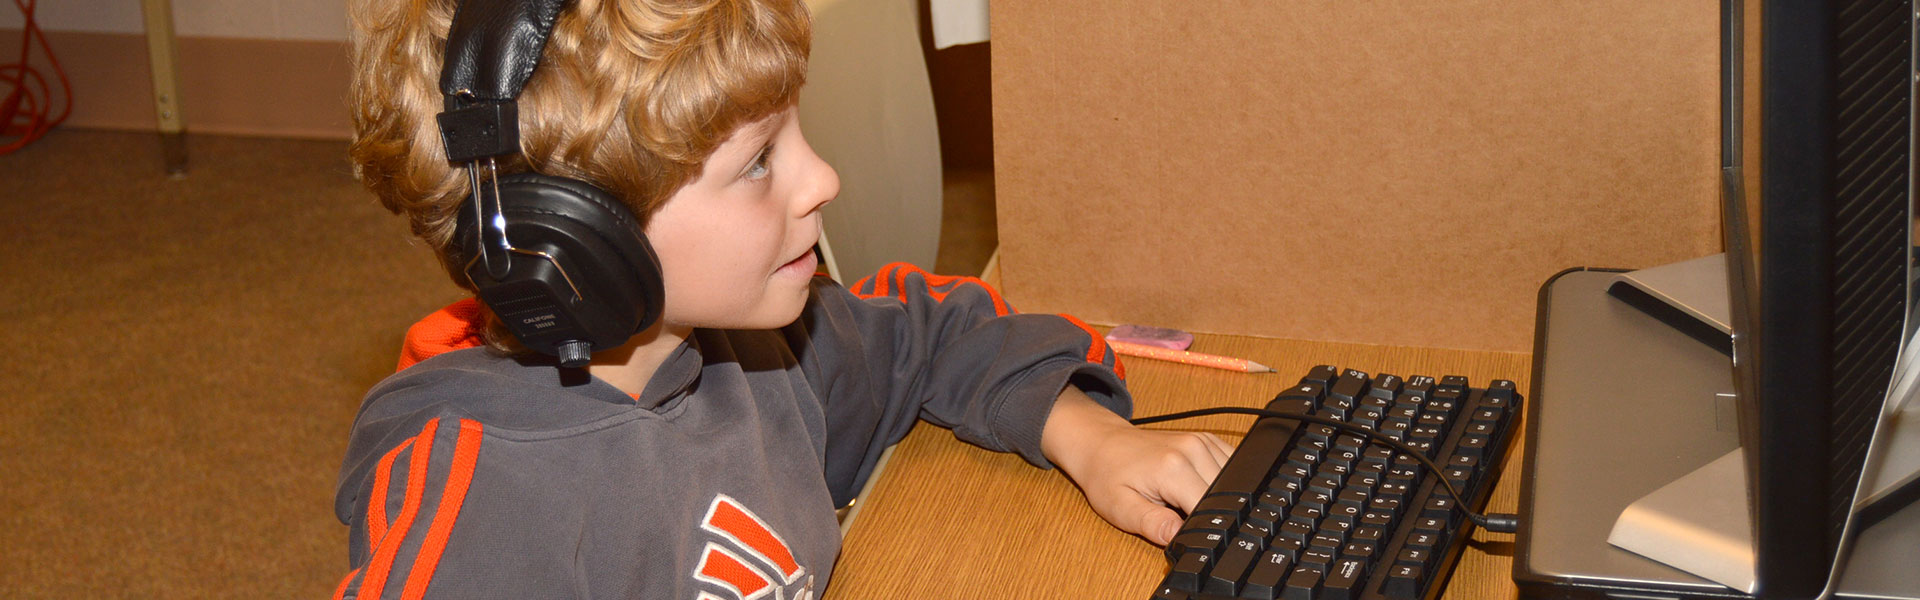 Sunman Elementary School Student Working with a Computer